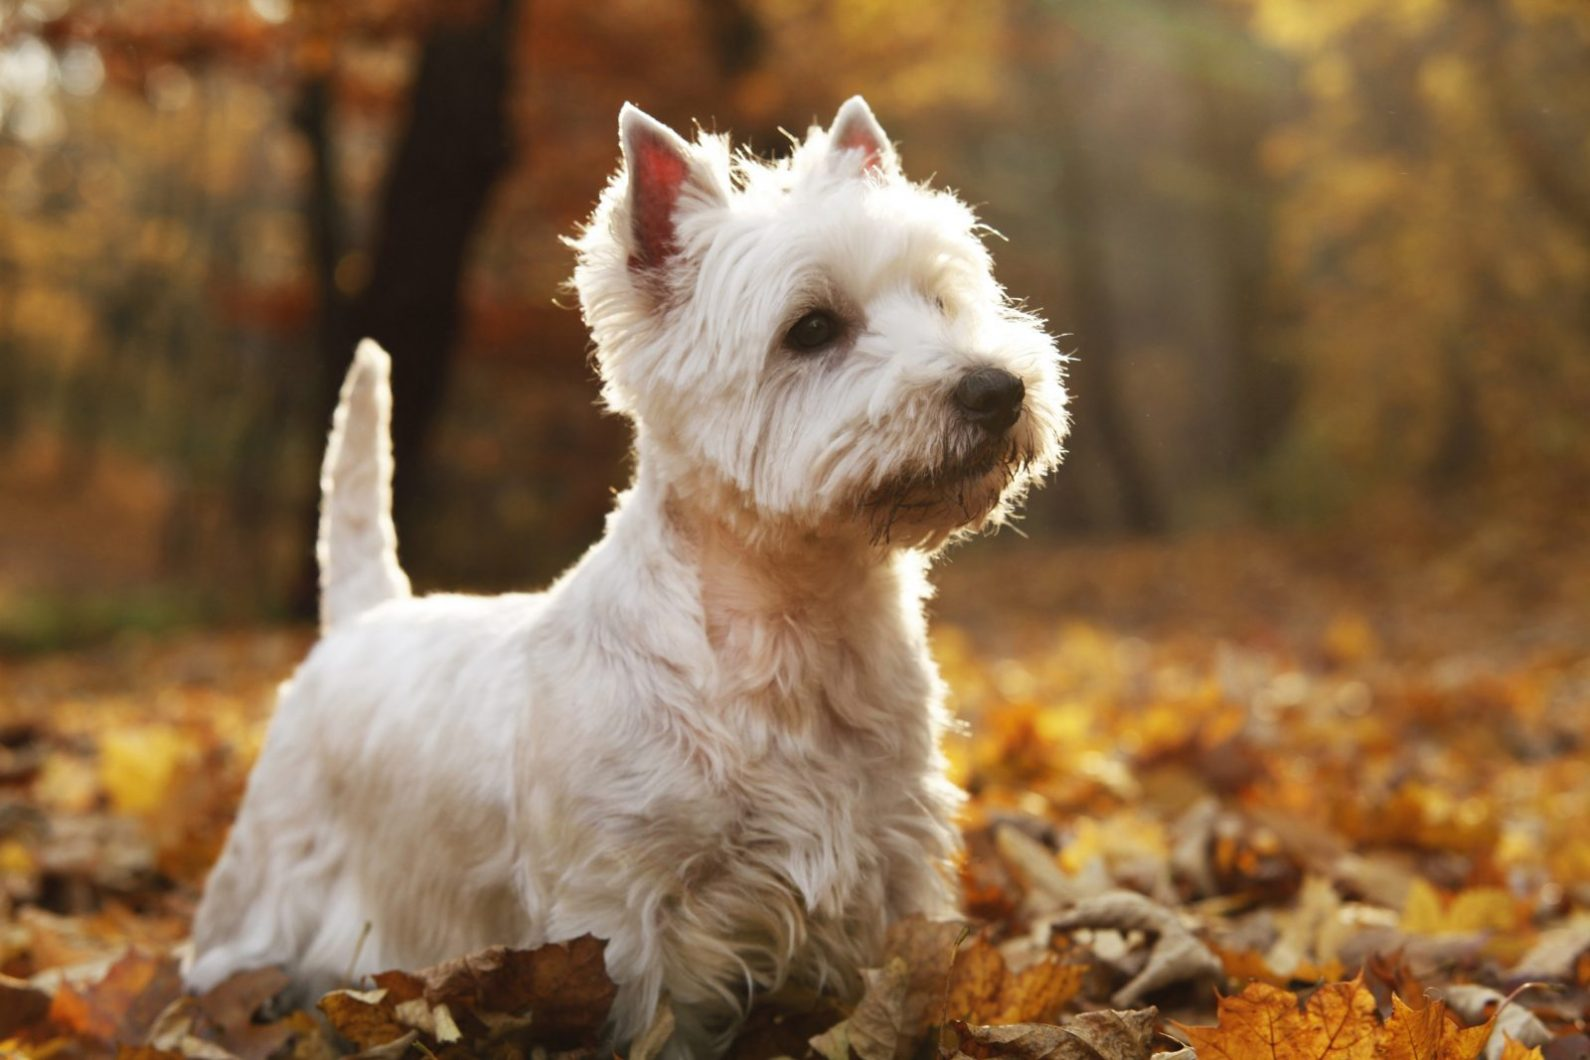 West Highland Terrier Puppies For Sale | Greenfield Puppies